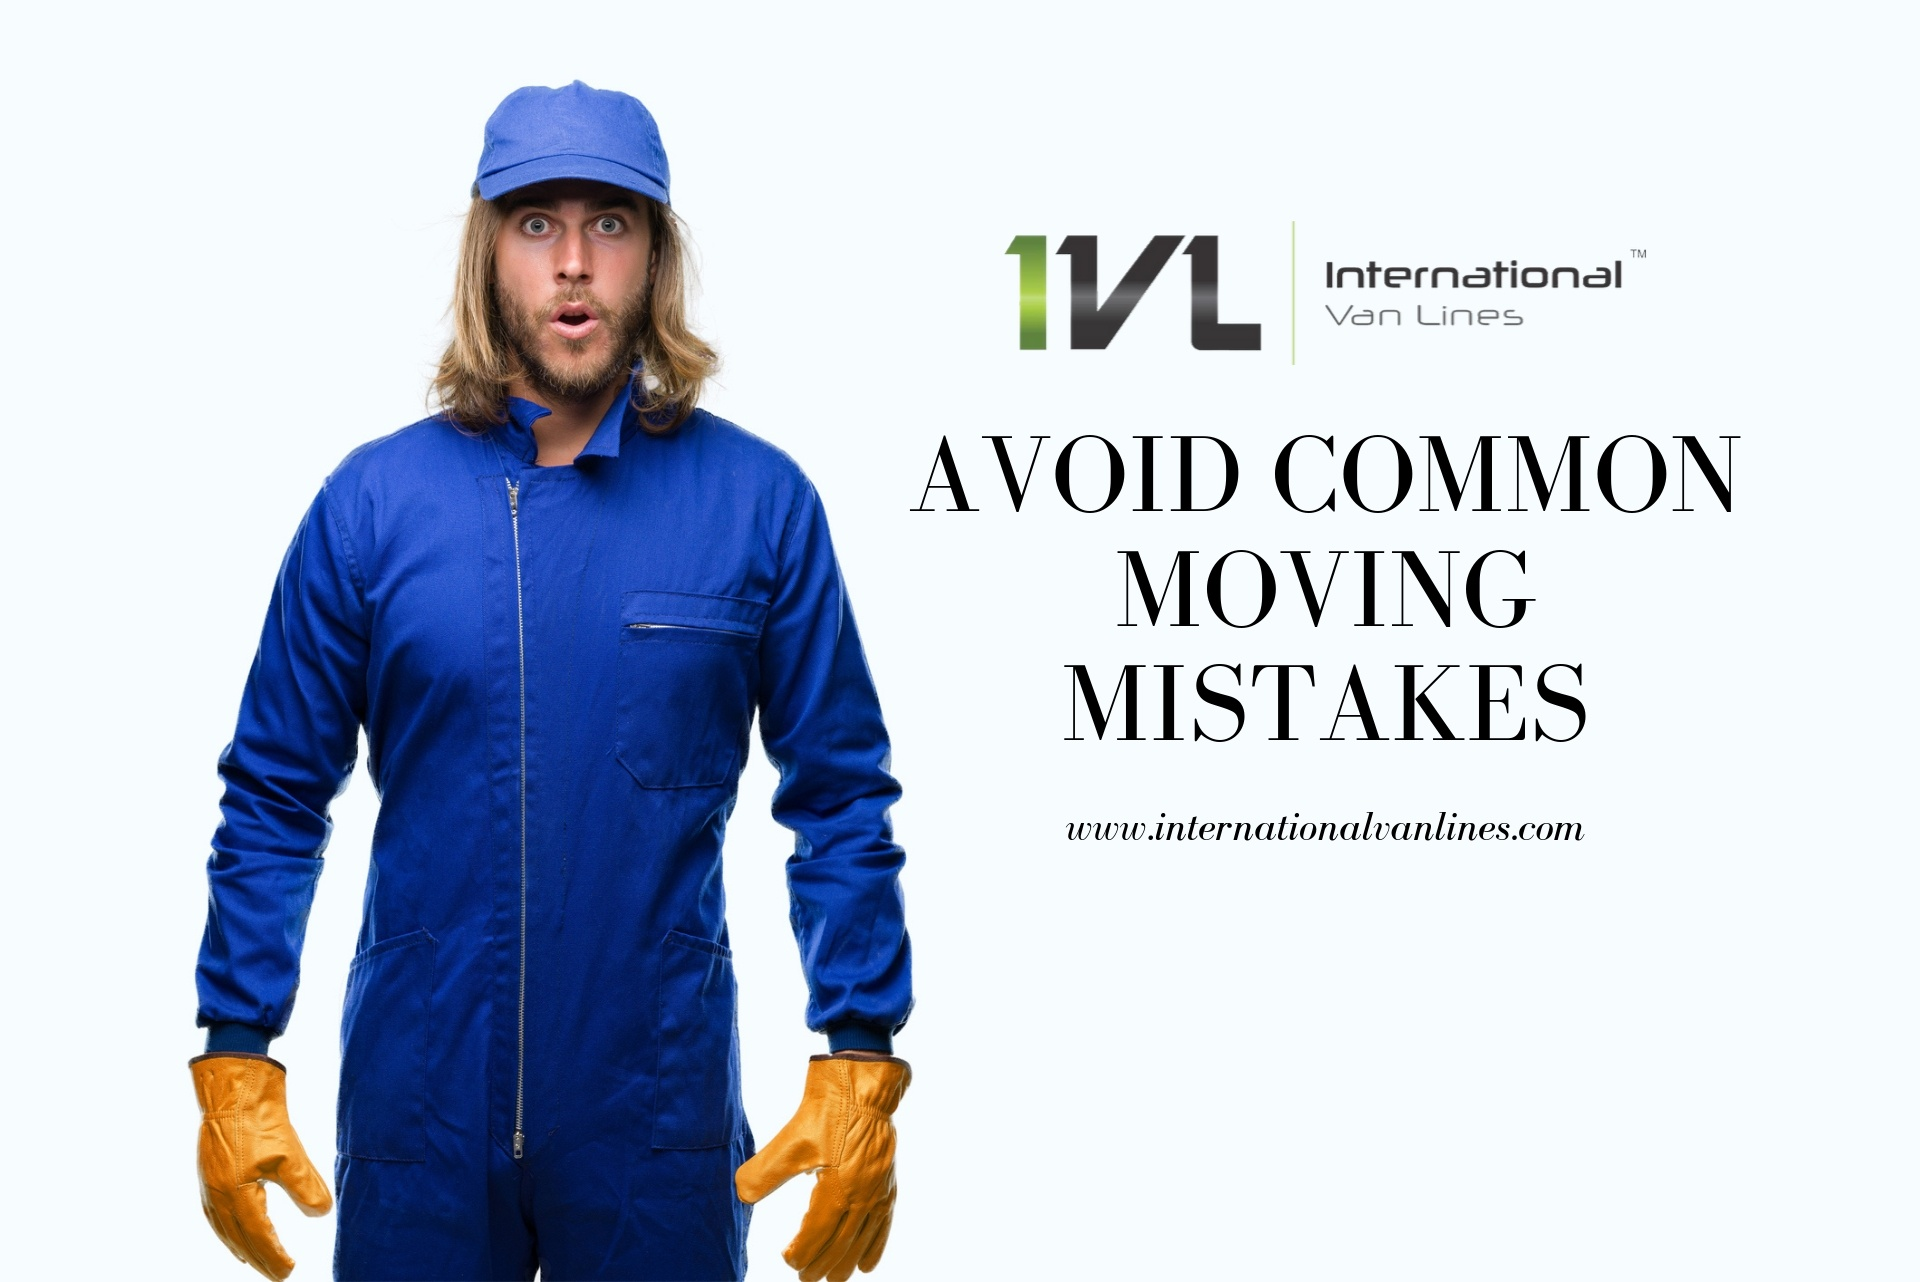 avoid common moving mistakes